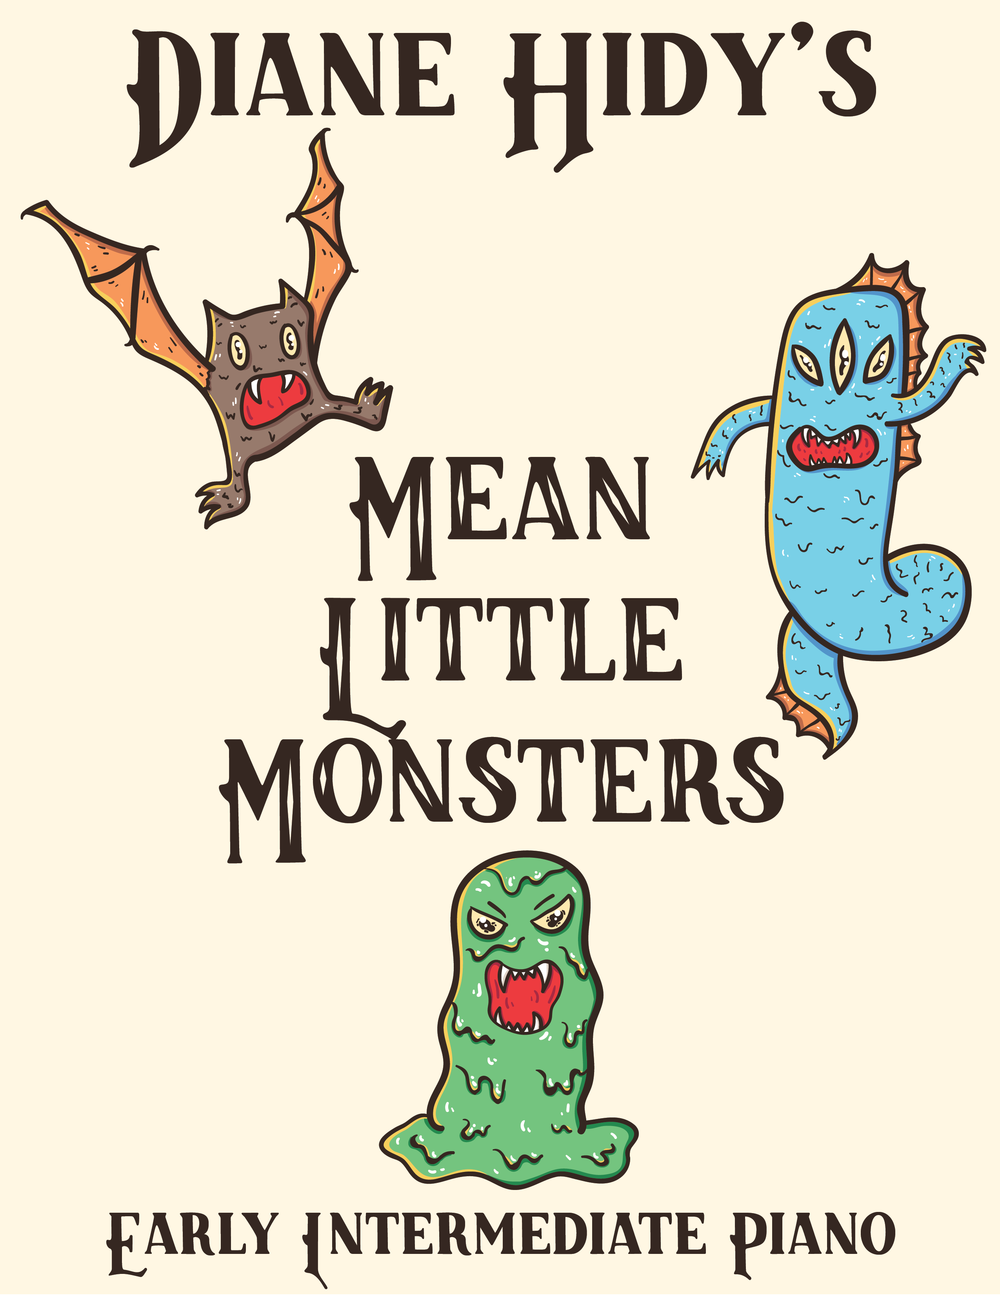 Diane Hidy's Mean Little Monsters